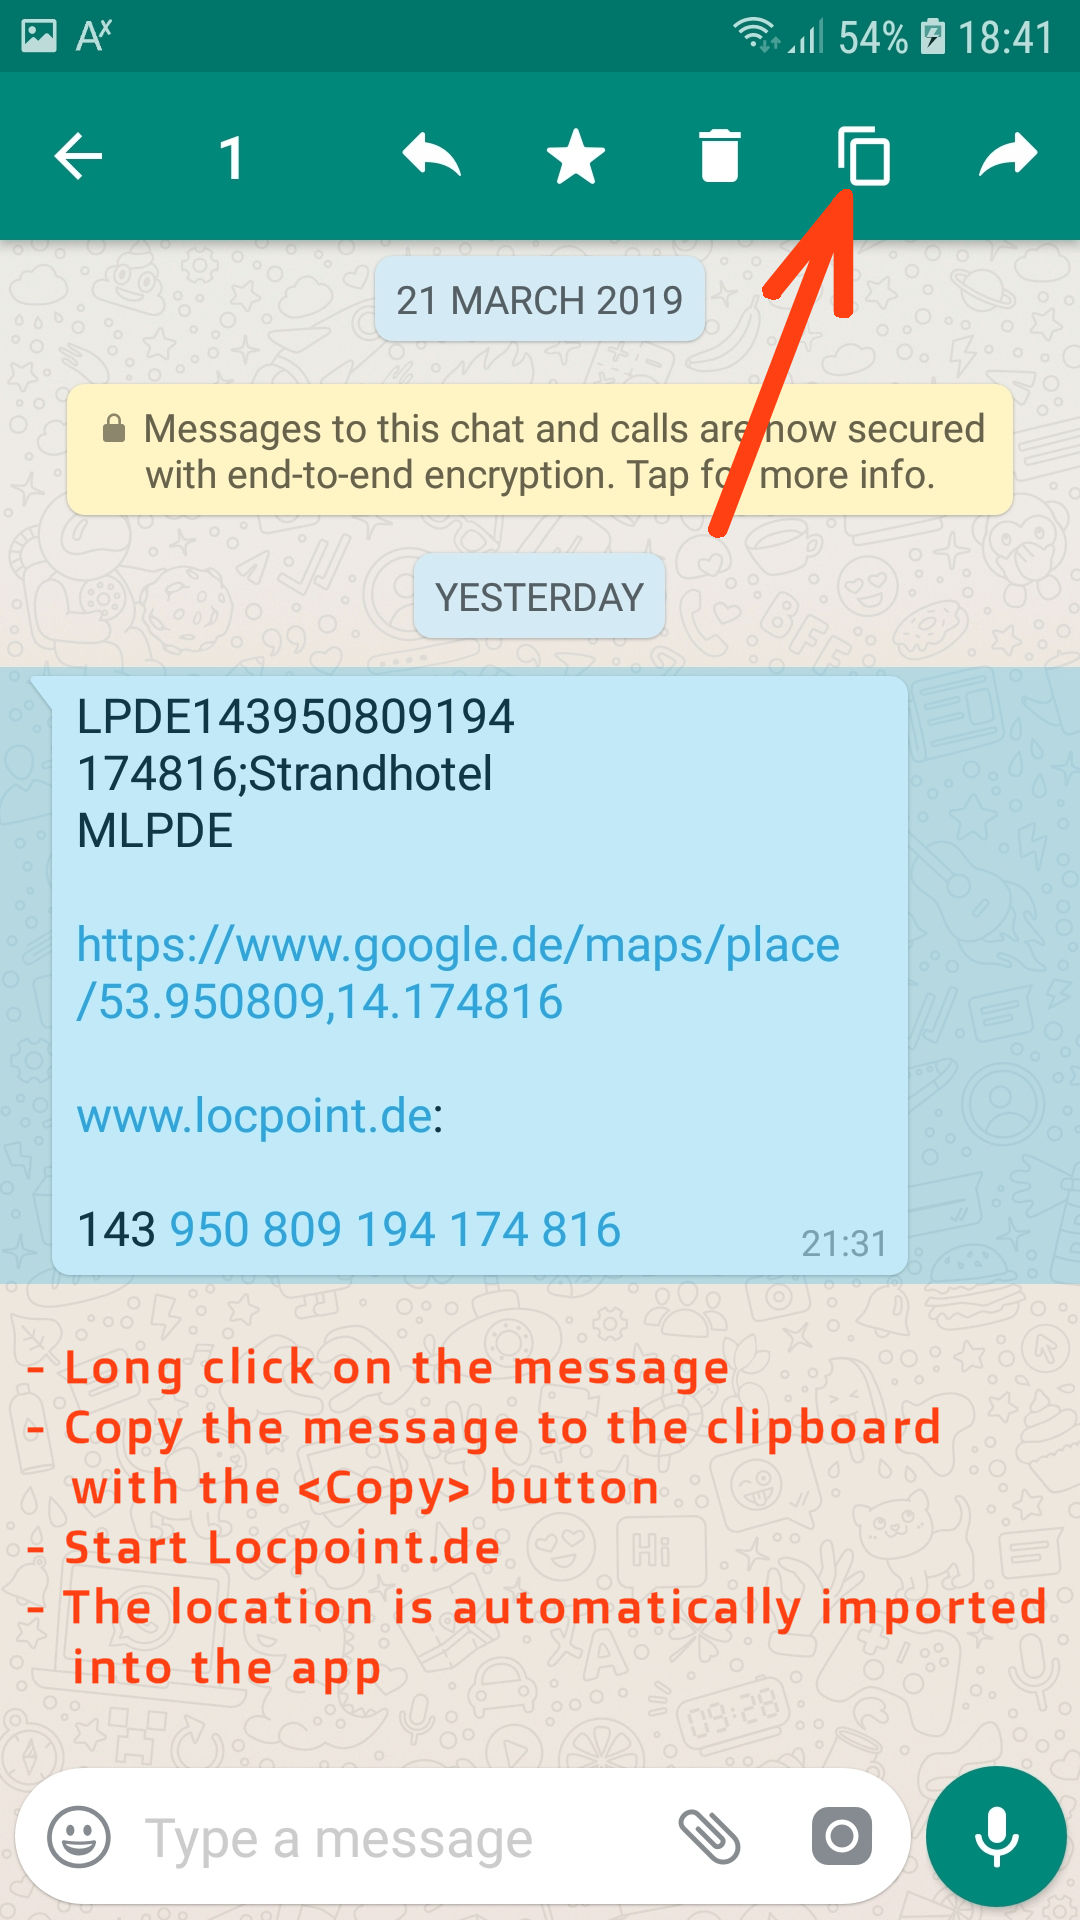 LocPoint: GPS Location unique number for sharing